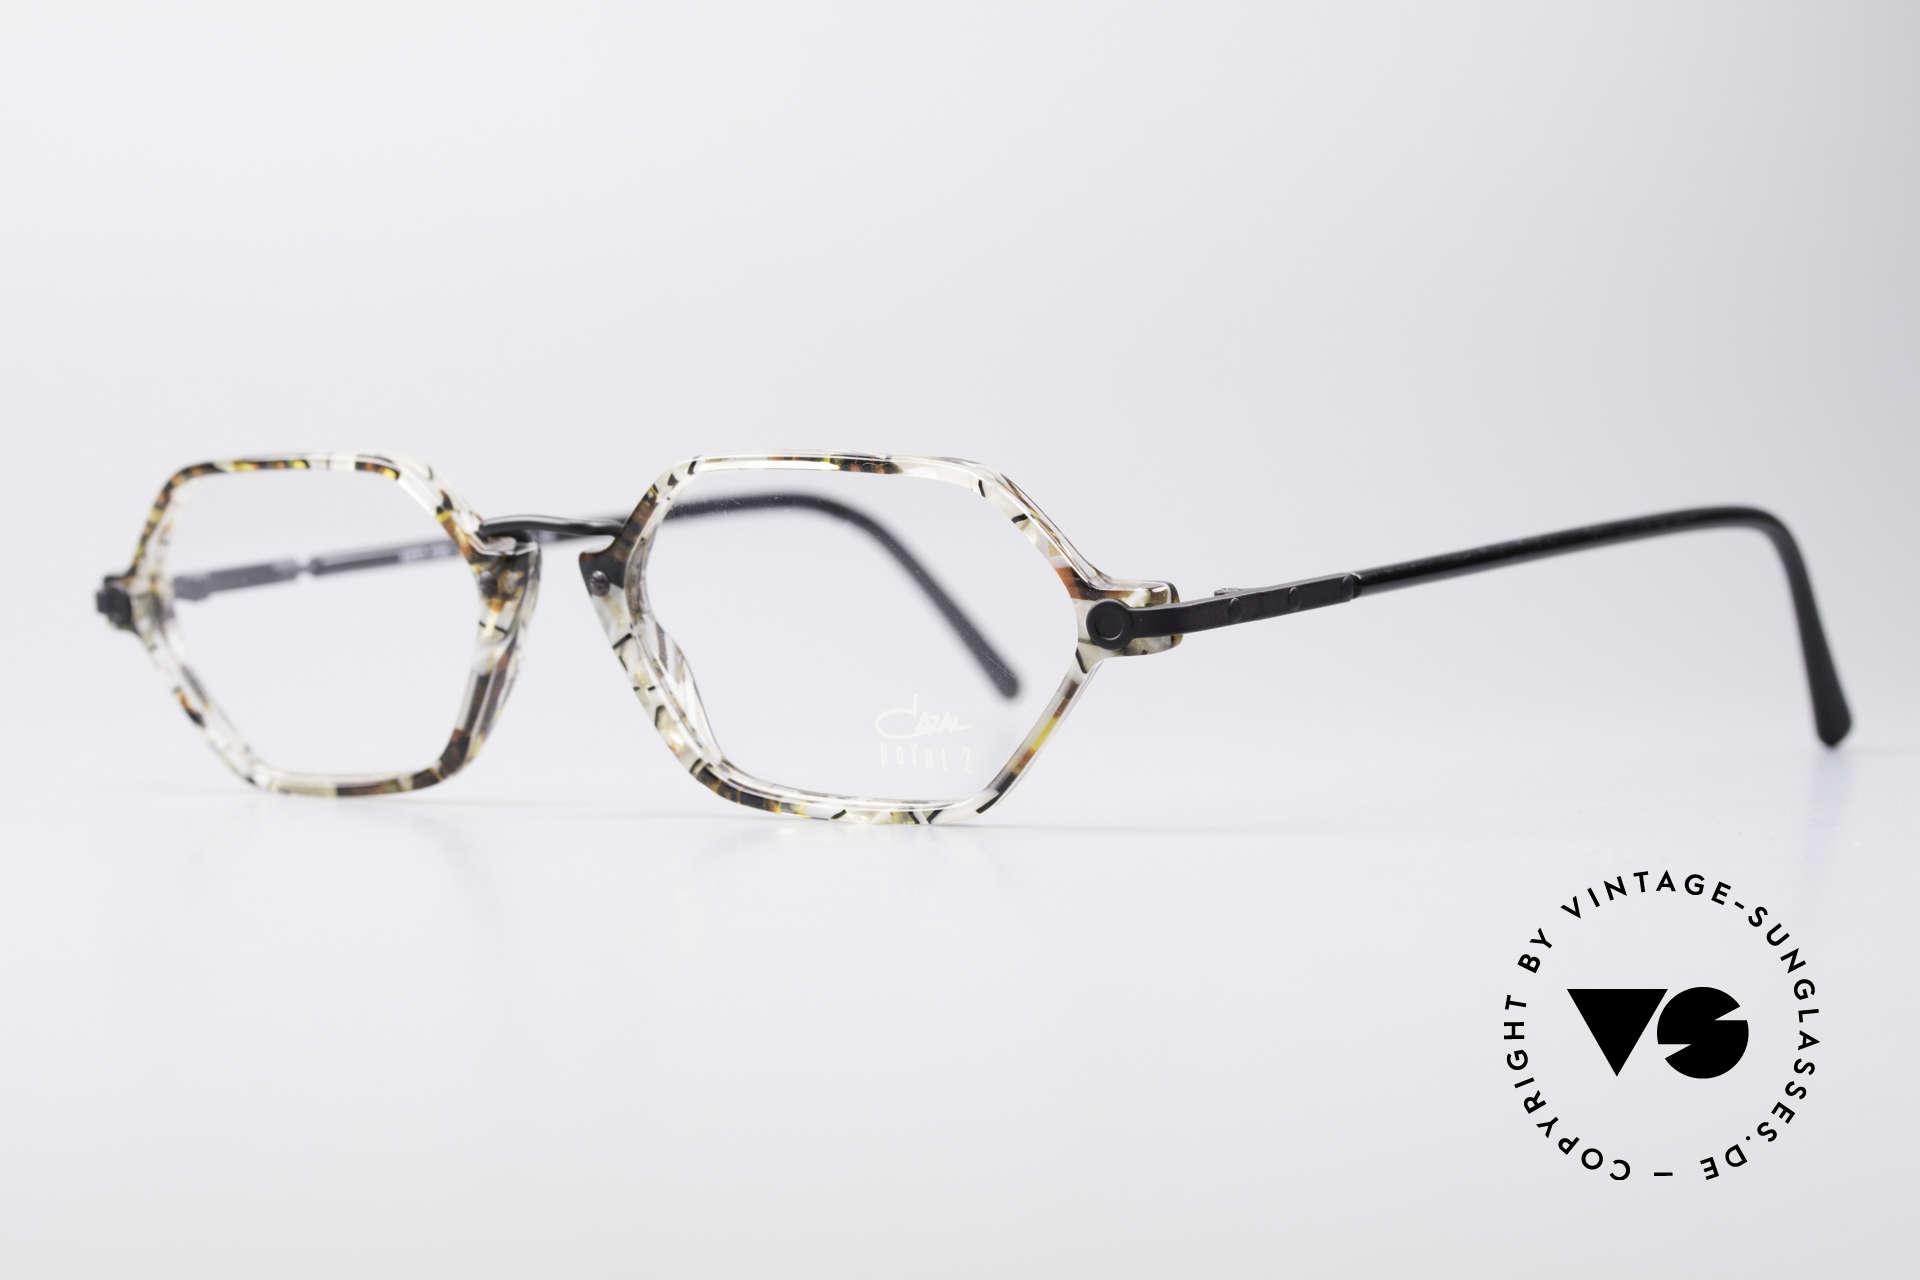 Cazal 1302 - Point 2 Octagonal 90's Eyeglass-Frame, delicate combination of materials and shape (octagonal), Made for Men and Women